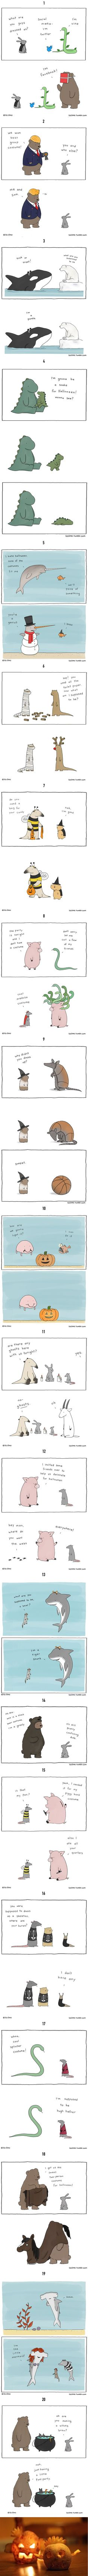 Simpsons Illustrator Elizabeth (Liz) Climo Shows What Would Happen If Animals Celebrated Halloween - 9GAG